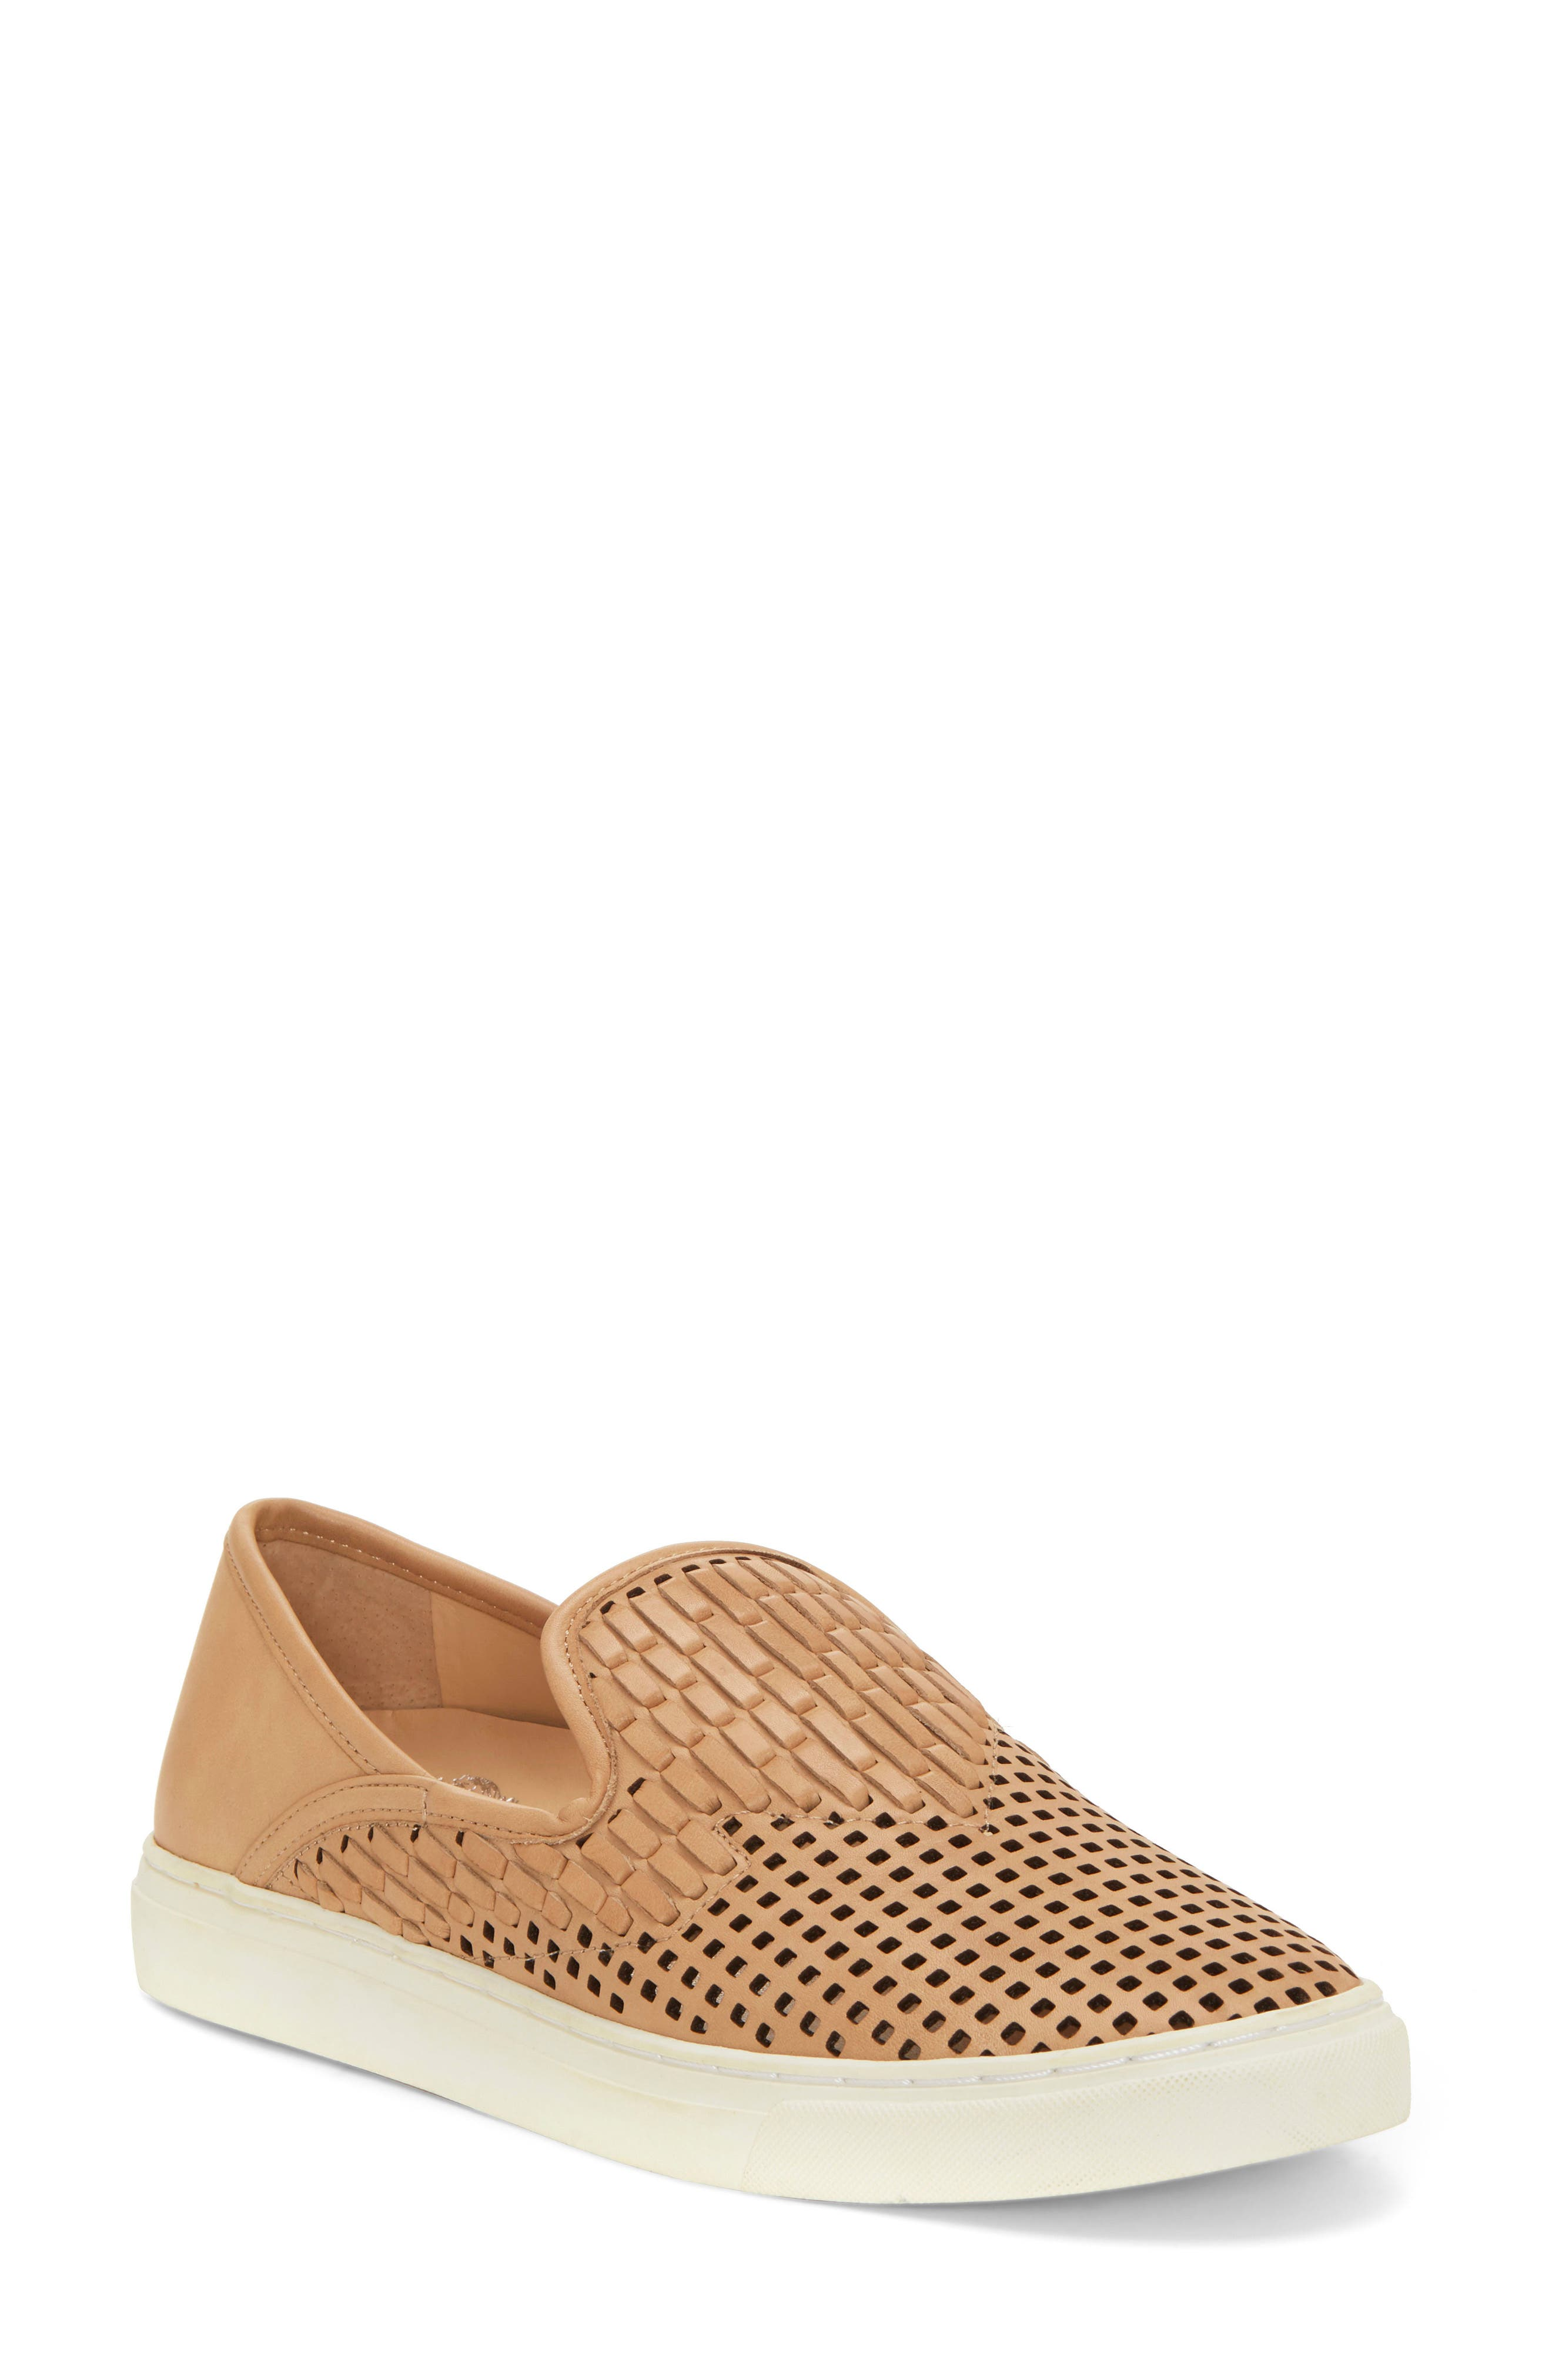 VINCE CAMUTO,                             Bristie Sneaker,                             Main thumbnail 1, color,                             NATURAL LEATHER